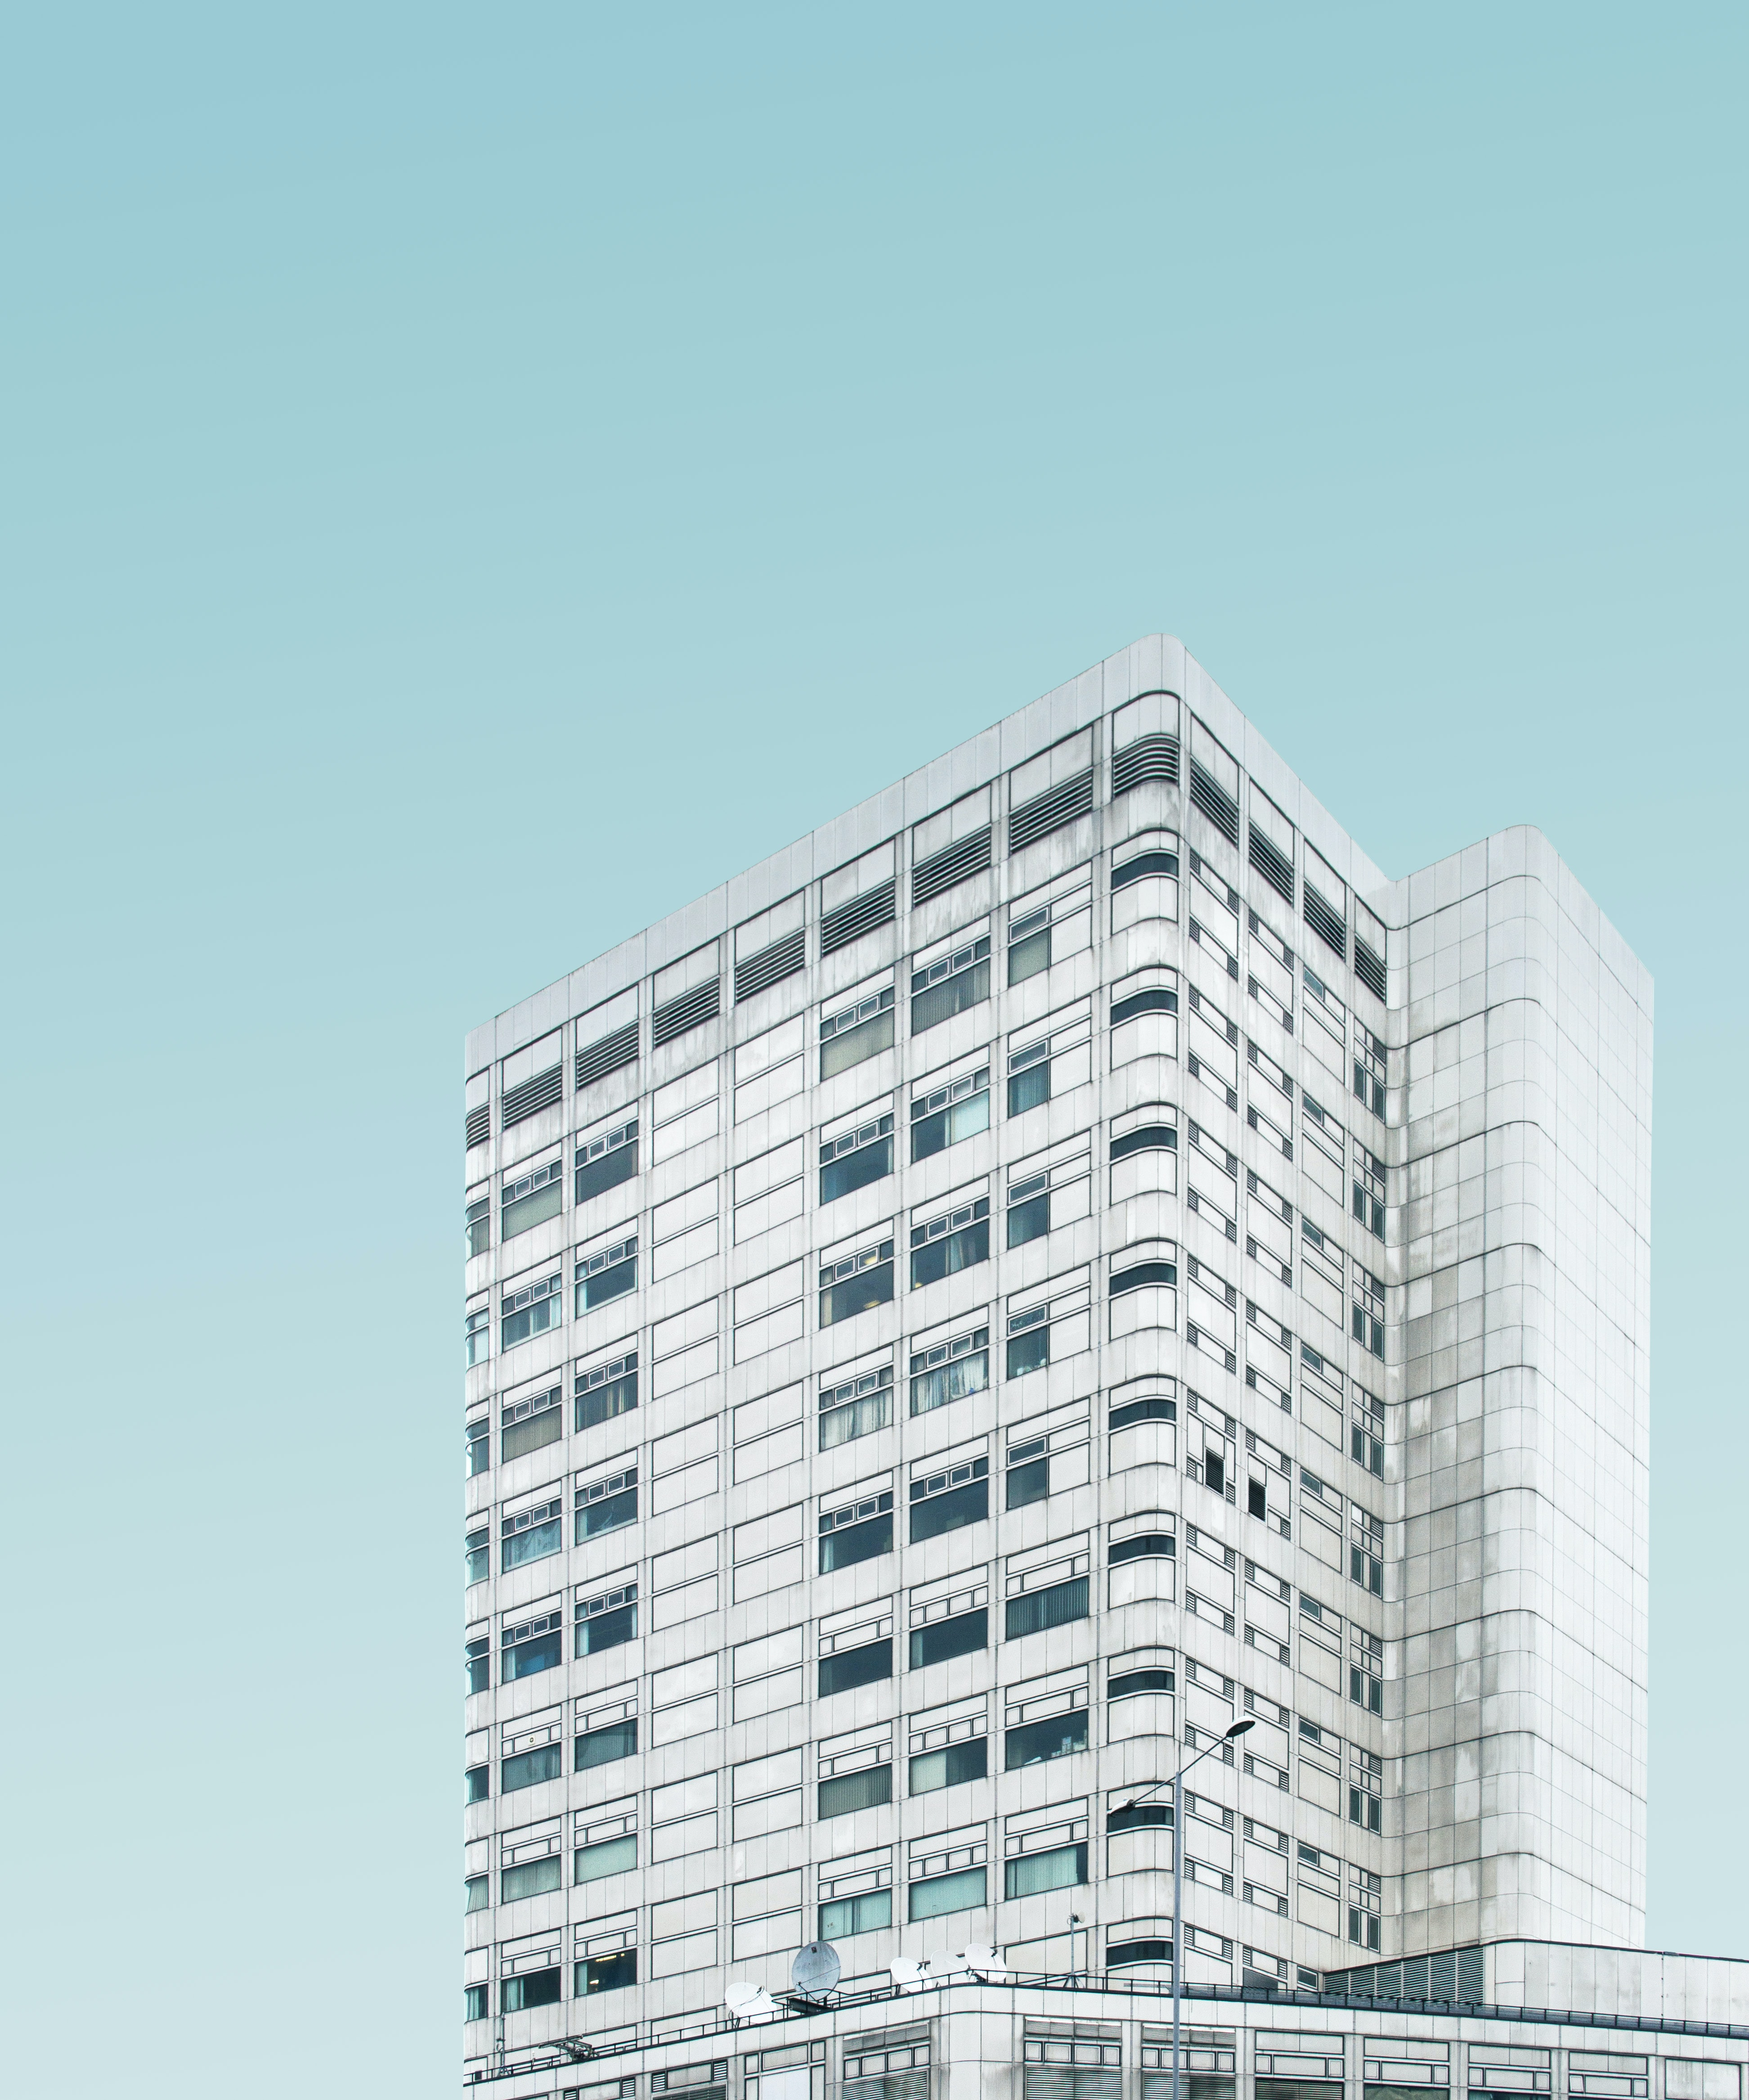 architectural photography of white concrete high-rise building